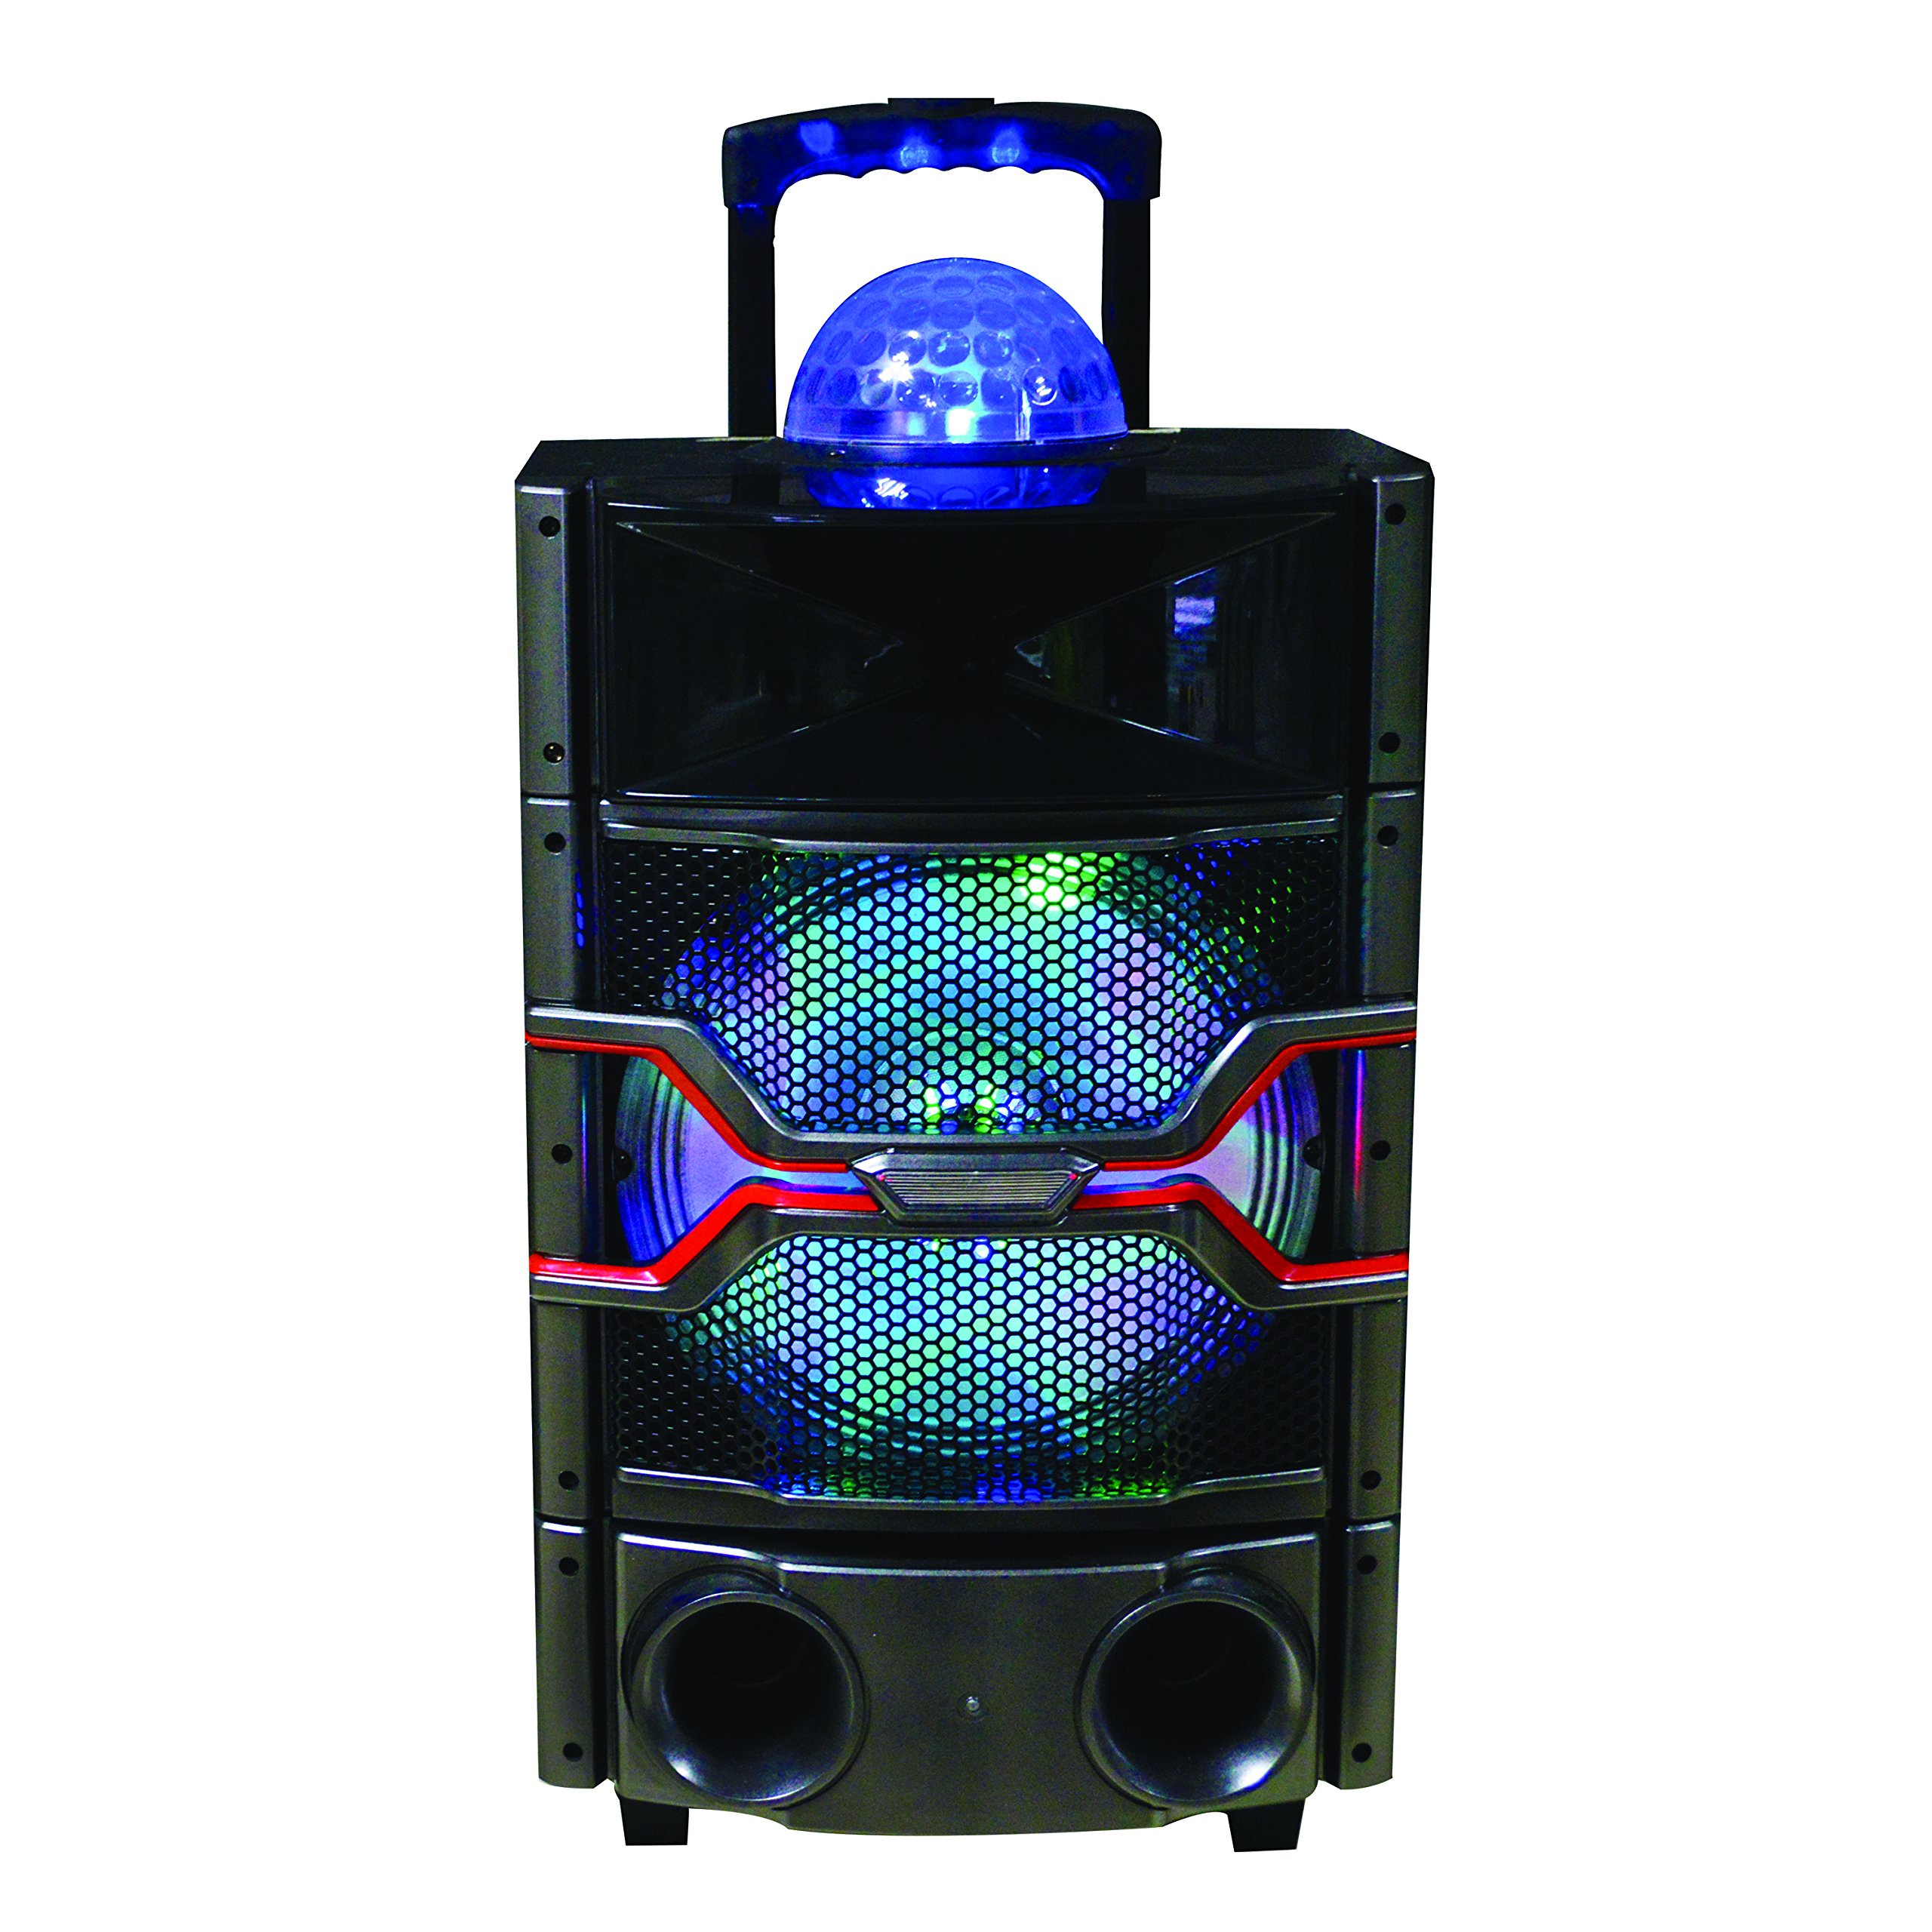 SuperSonic IQsound Wireless Bluetooth Portable DJ Speaker System, 12-Inch High Efficiency Woofer, LED and Disco Lights